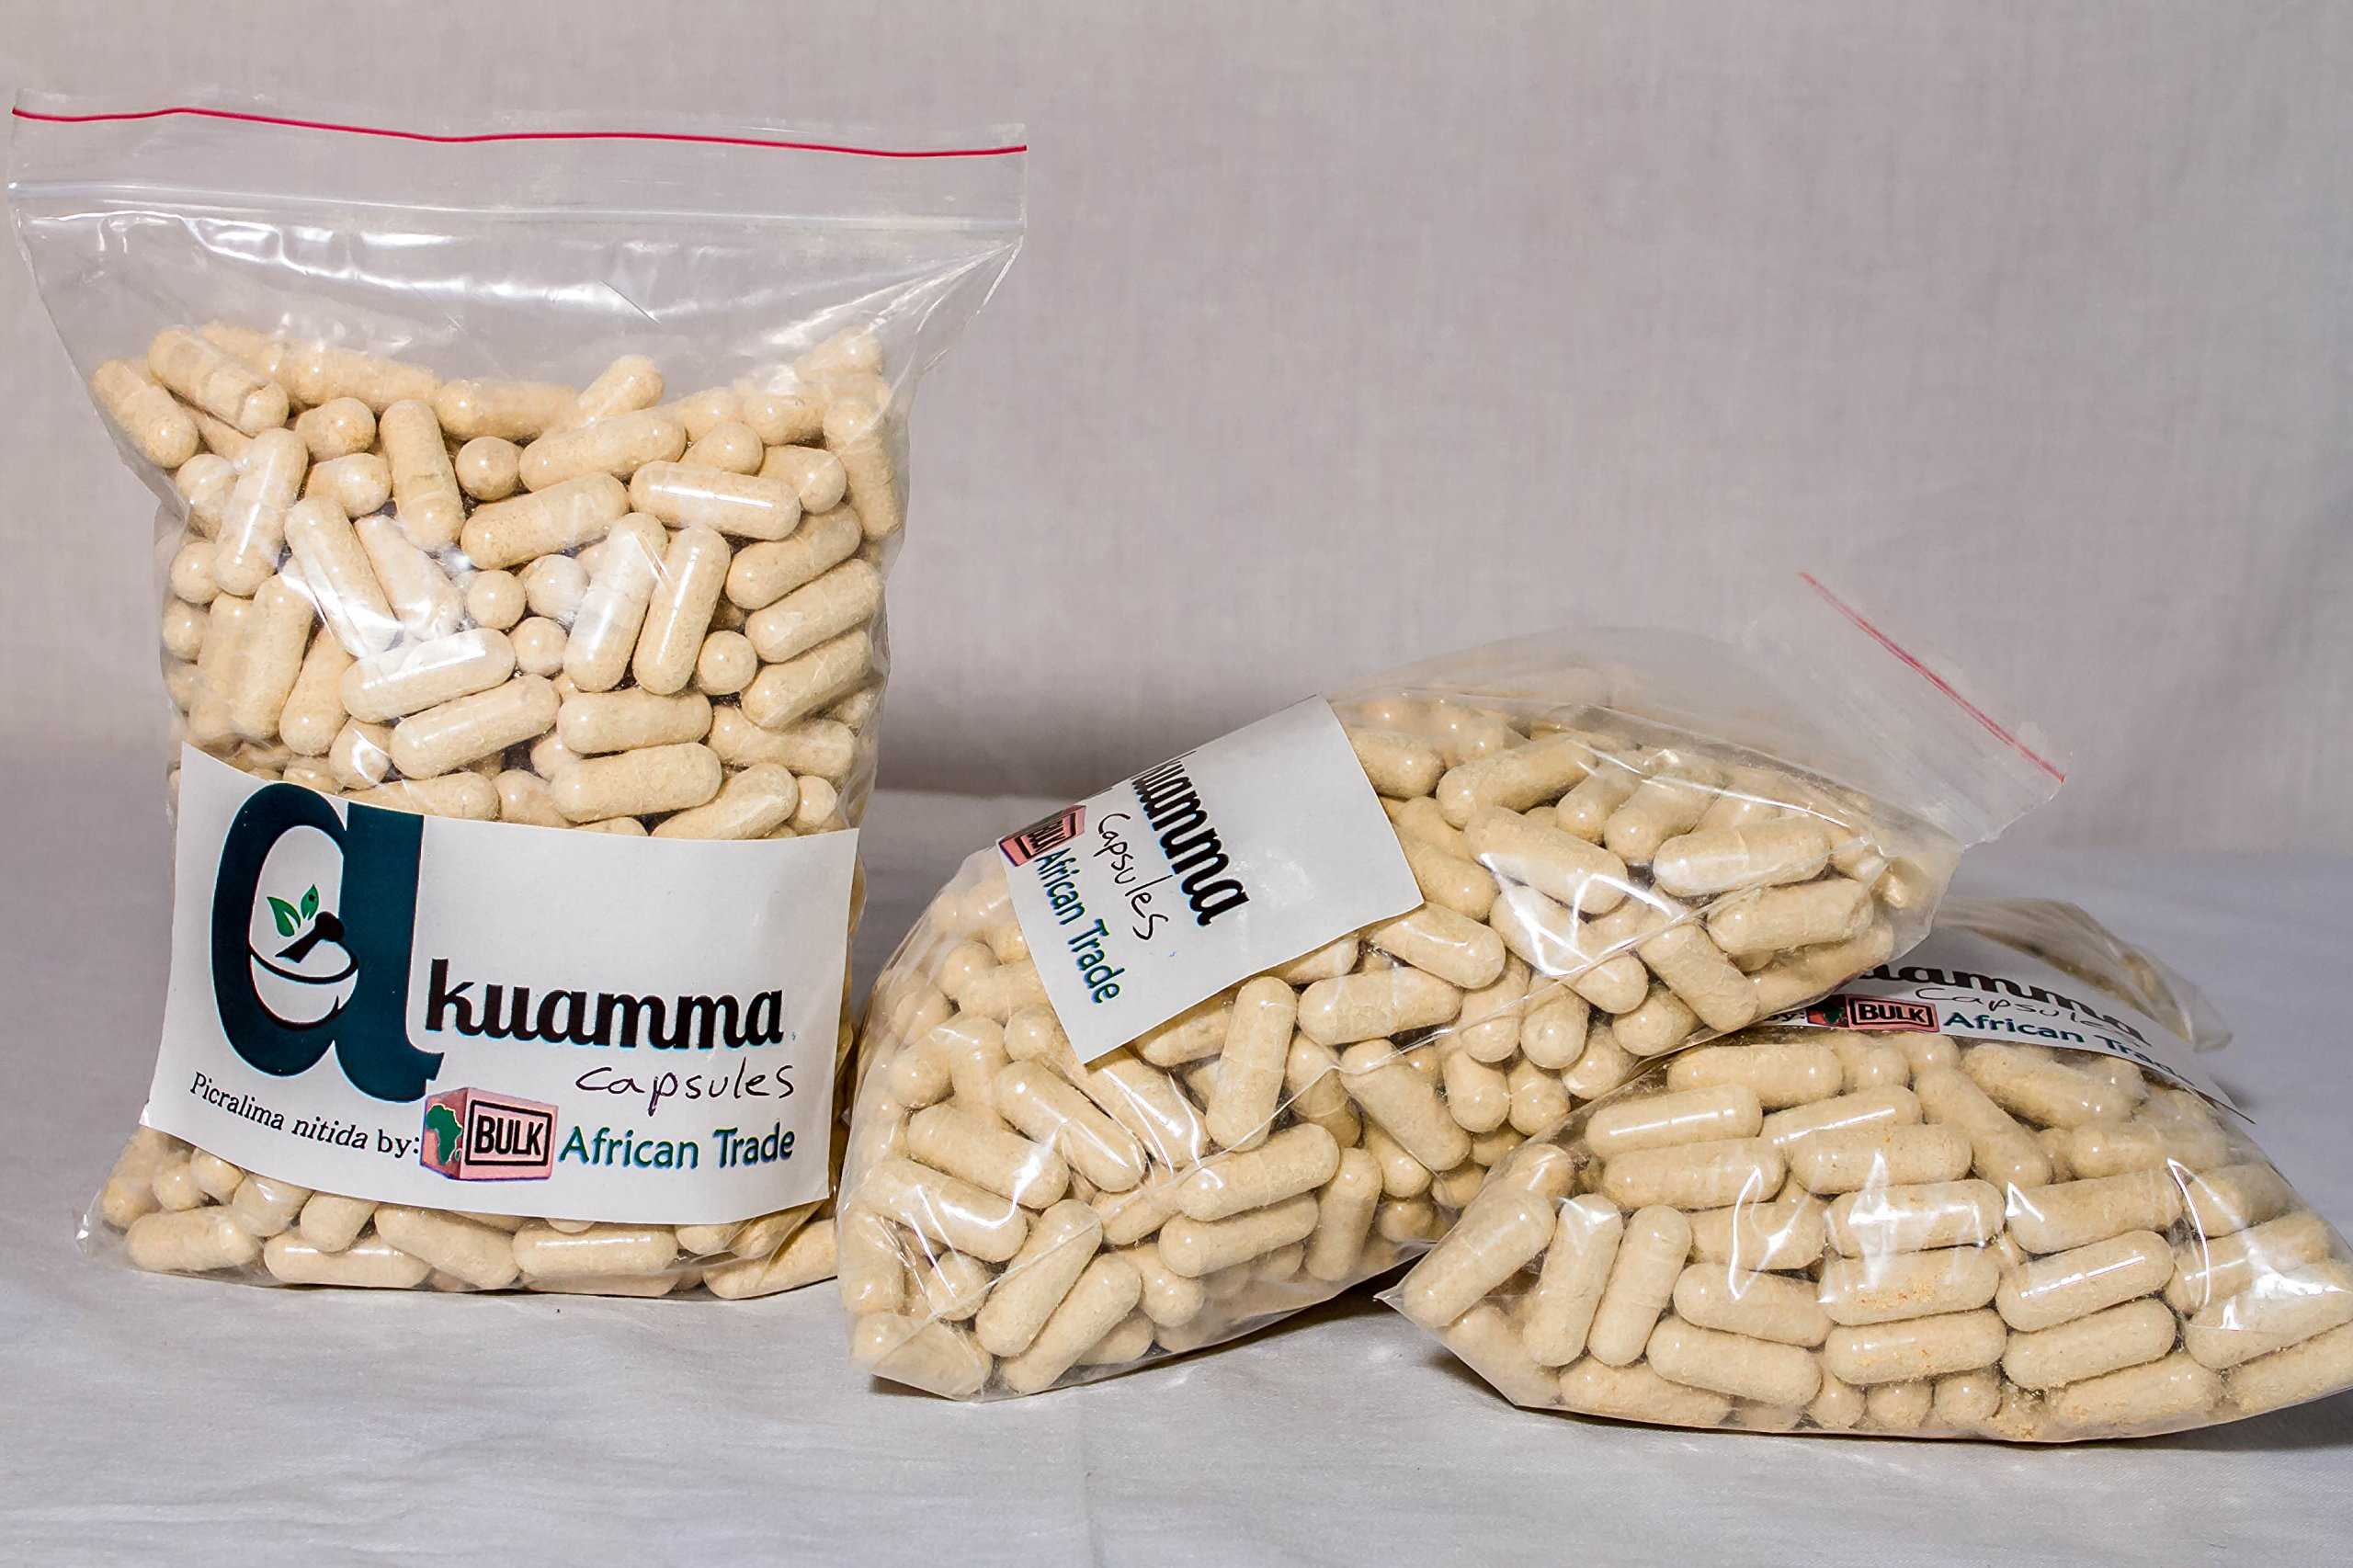 Akuamma seed powder capsules. The Original Picra Caps 1000 count